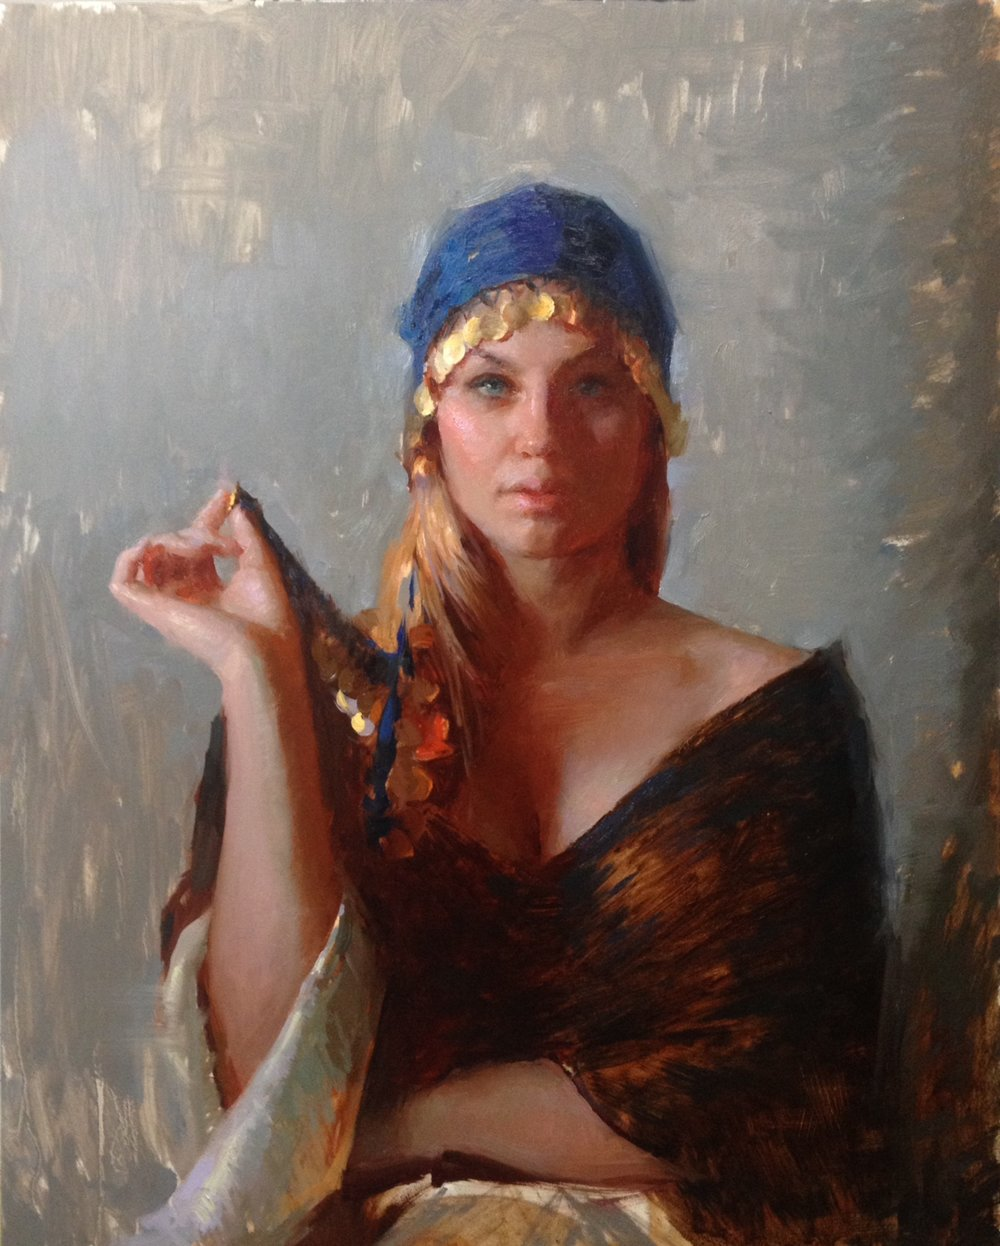 """Gypsy in Blue Bandana""   16 x 20 inches"